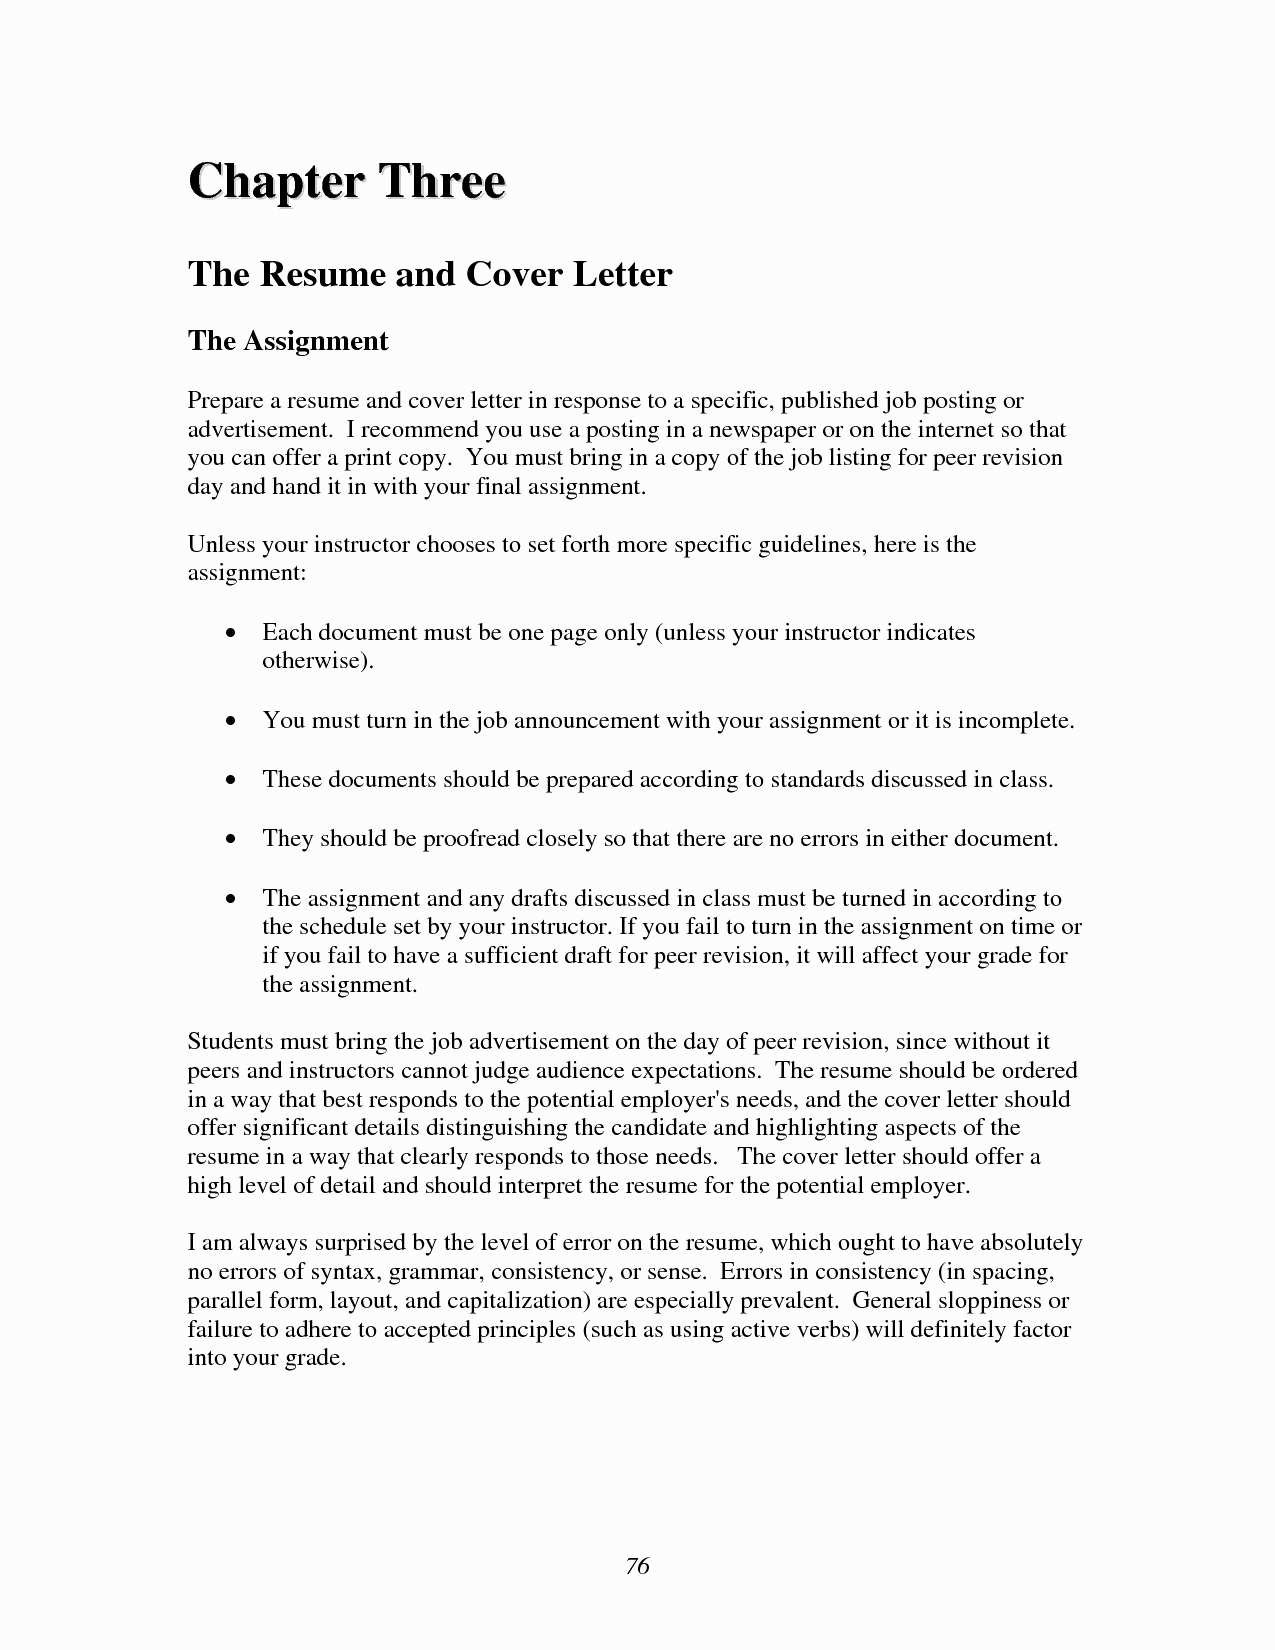 Formal Job Offer Letter Template - formal Job Fer Letter Best Job Fer Letter Template Us Copy Od